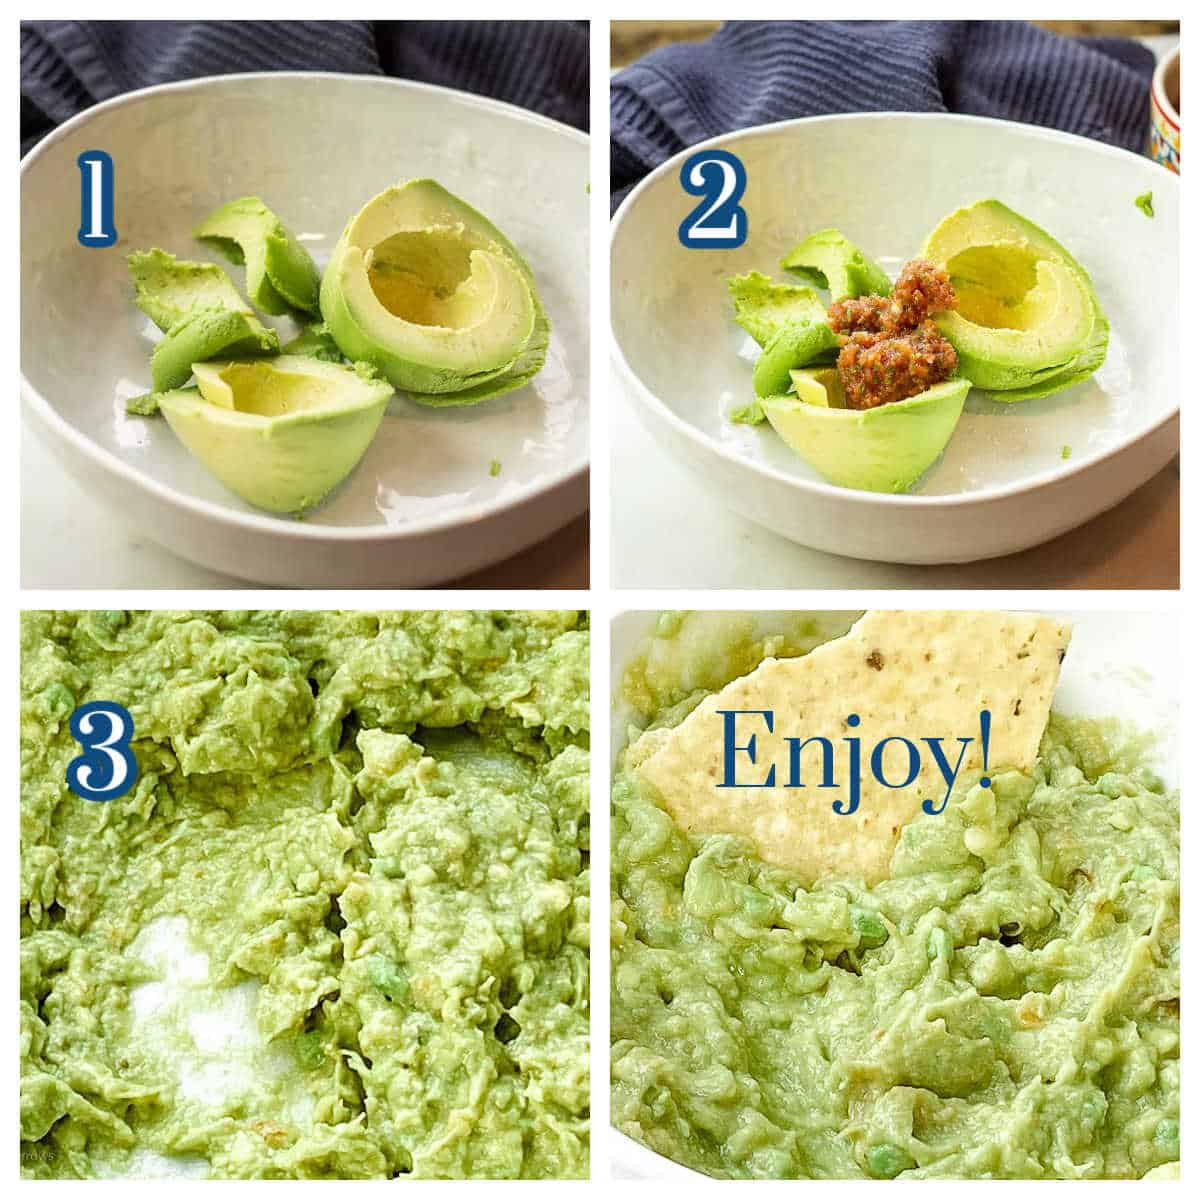 Image of Process Shots showing how to make the Best Guacamole in 3 Easy Steps.